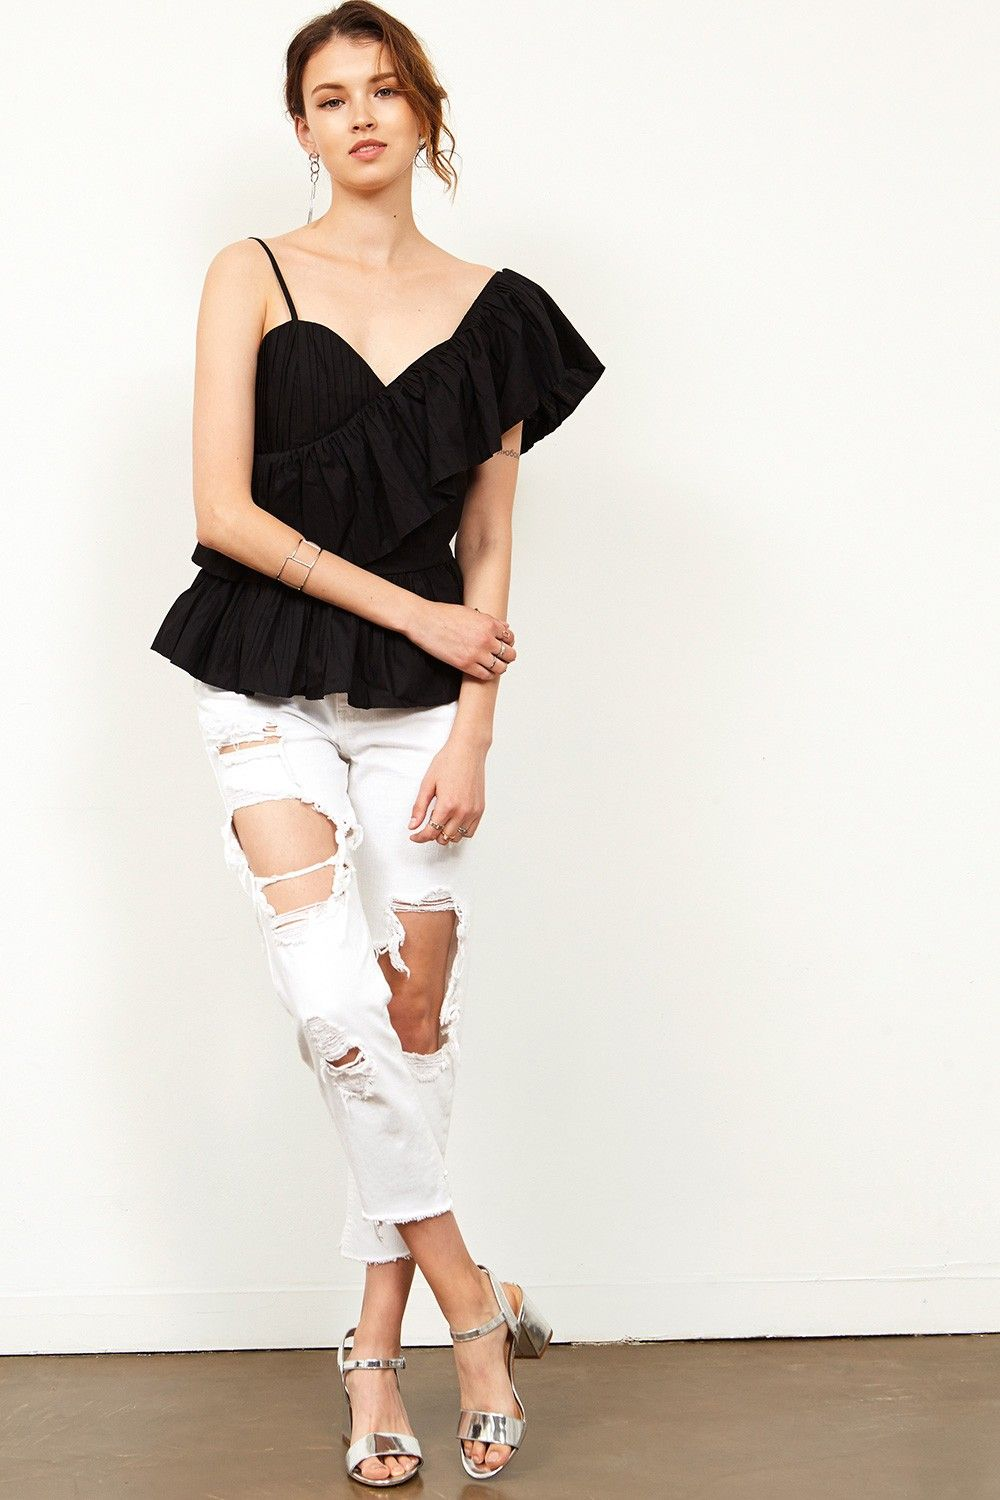 Kalisa Distressed White Jeans Discover the latest fashion trends online at storets.com #bottoms #jeans #whitejeans #distressedjeans #fashion #ootd #storetsonme